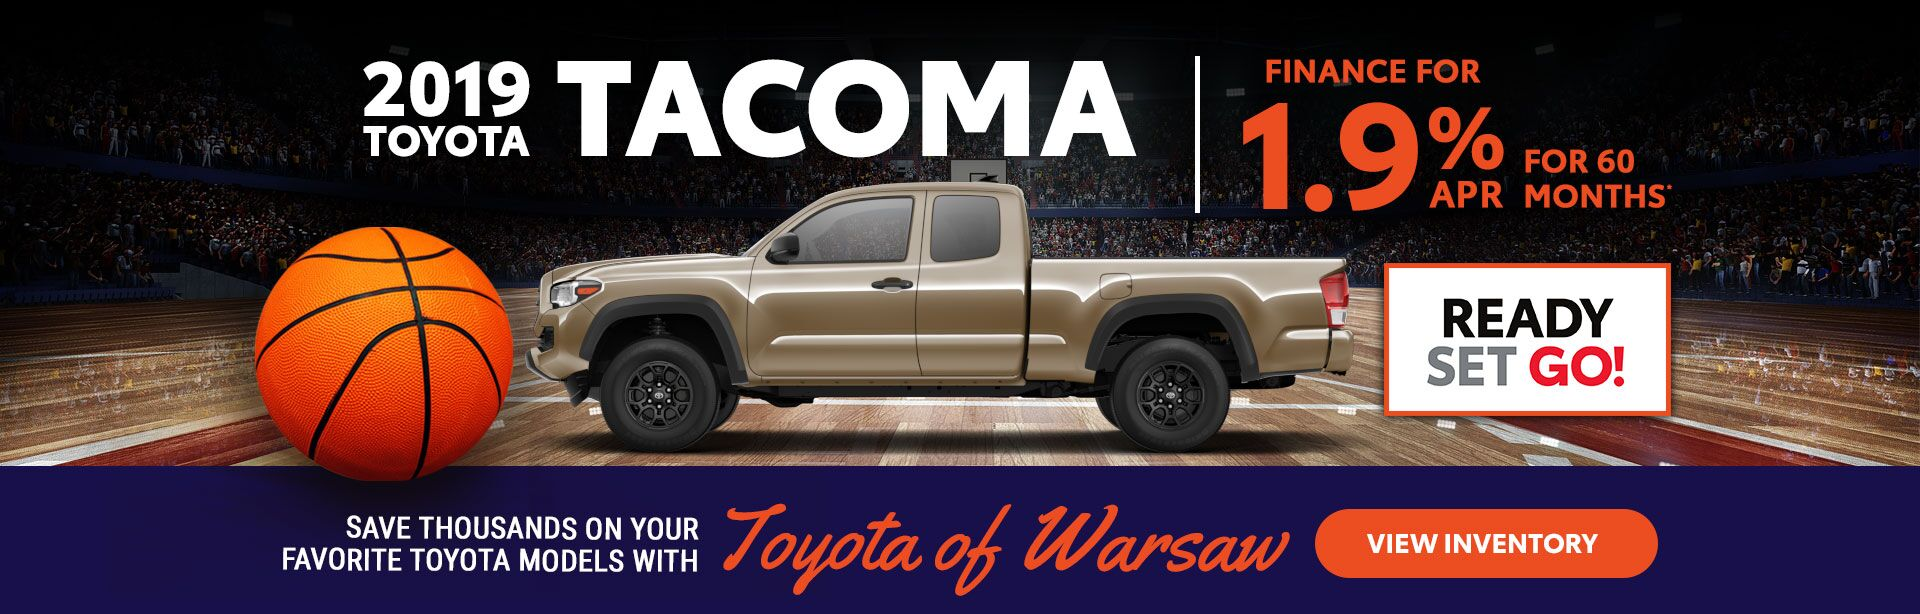 2019 Tacoma: 1.9% APR for 60 months